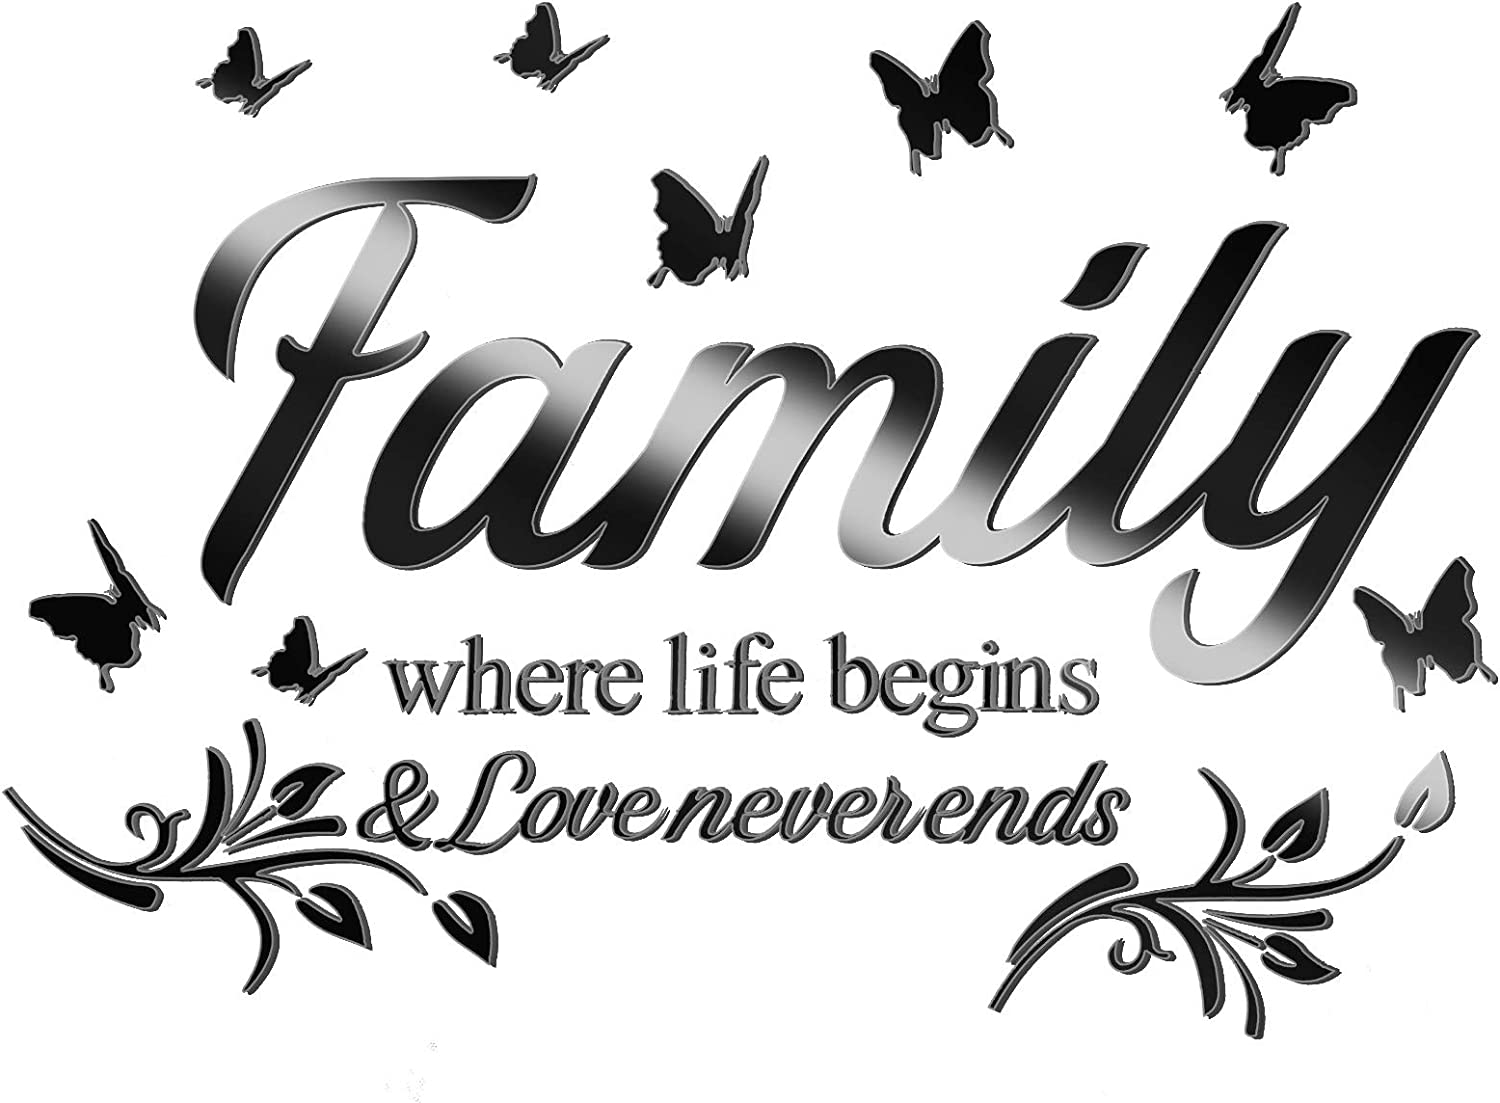 3D Acrylic Mirror Wall Decor Stickers Black Family Letter Quotes Wall Stickers Removable Family Wall Art Decals DIY Motivational Family Butterfly Mirror Stickers for Home Office Dorm Wall Decor